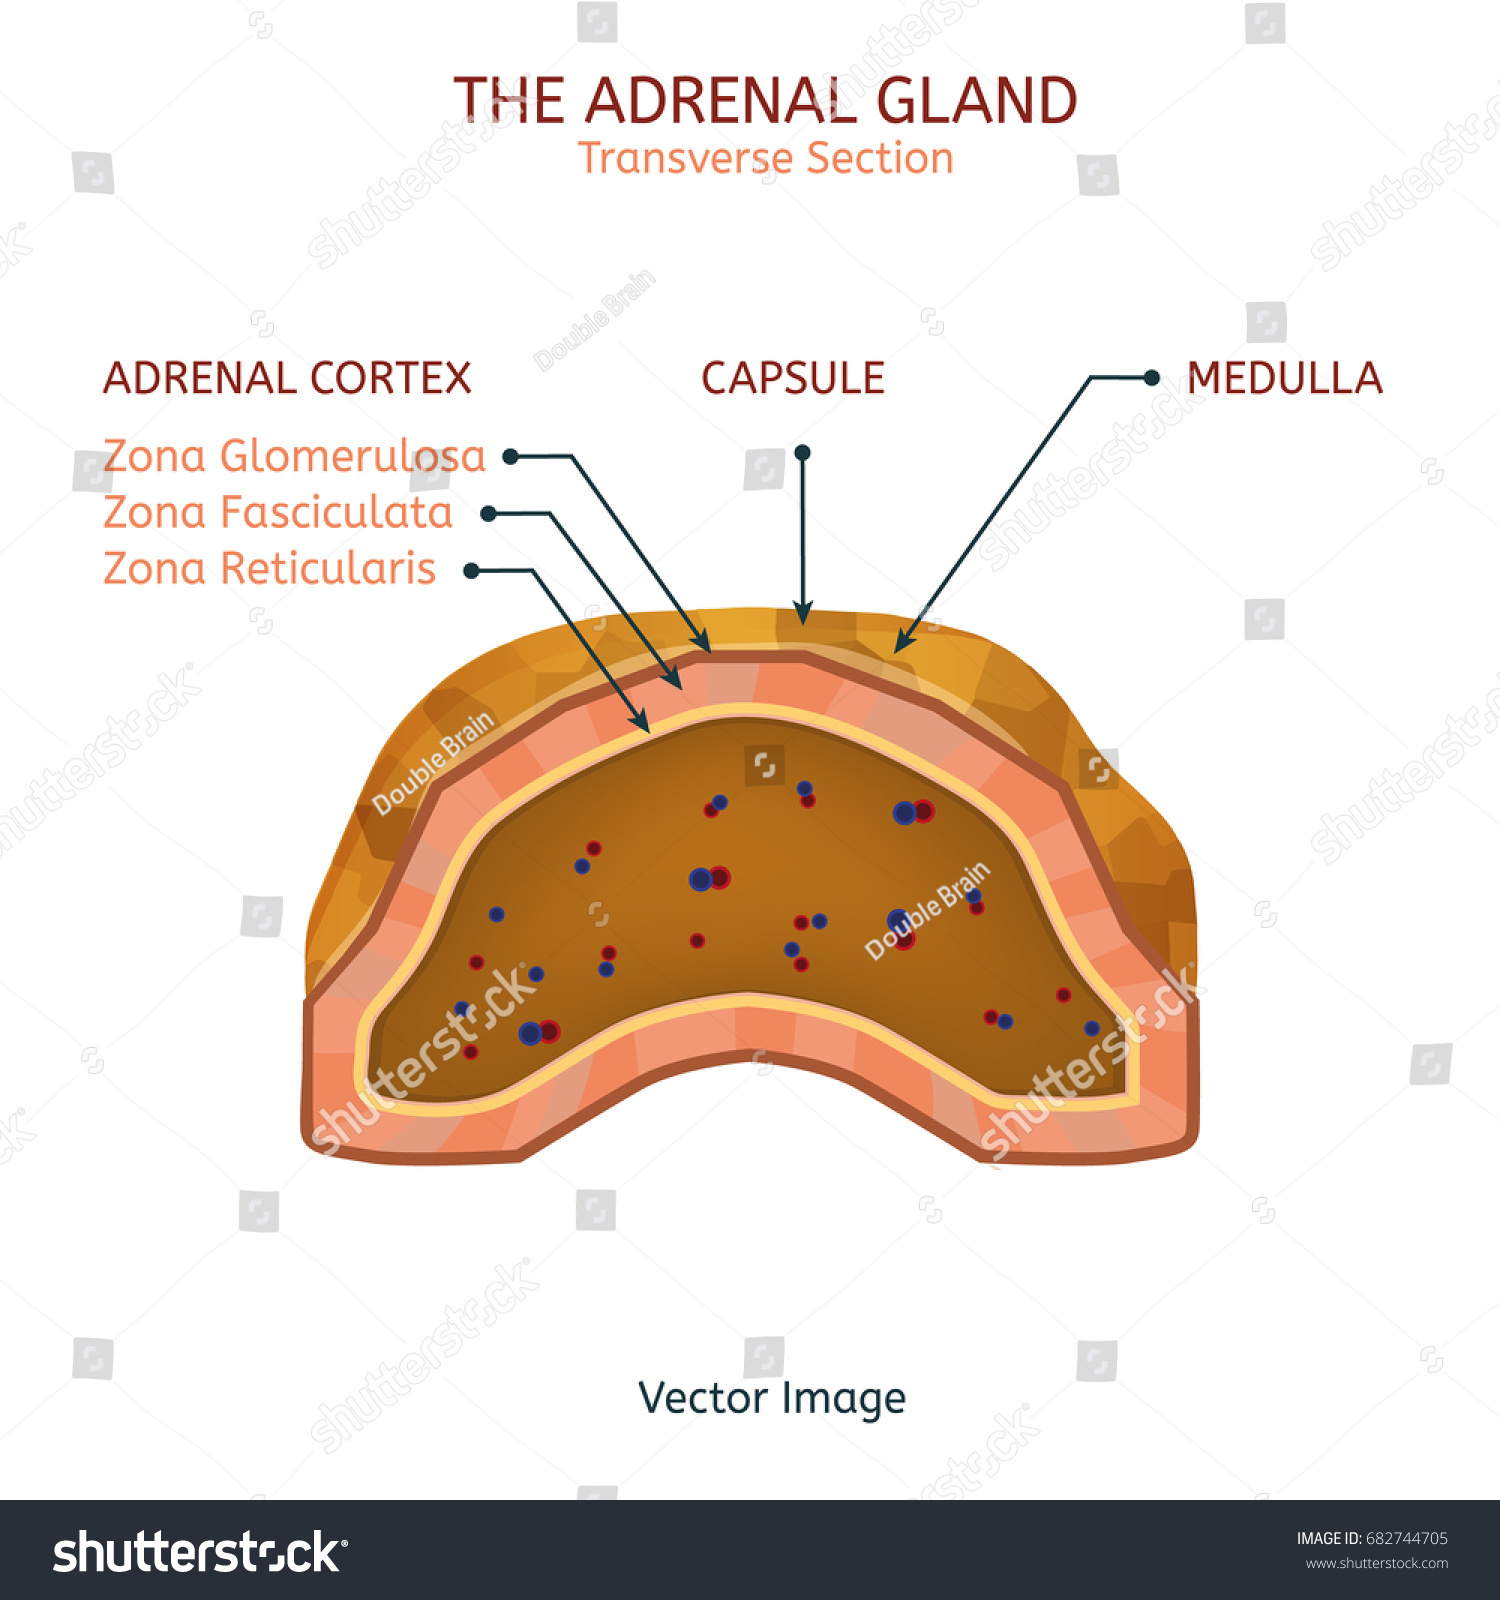 Human Adrenal Gland Image Cross Section Stock Vector Royalty Free